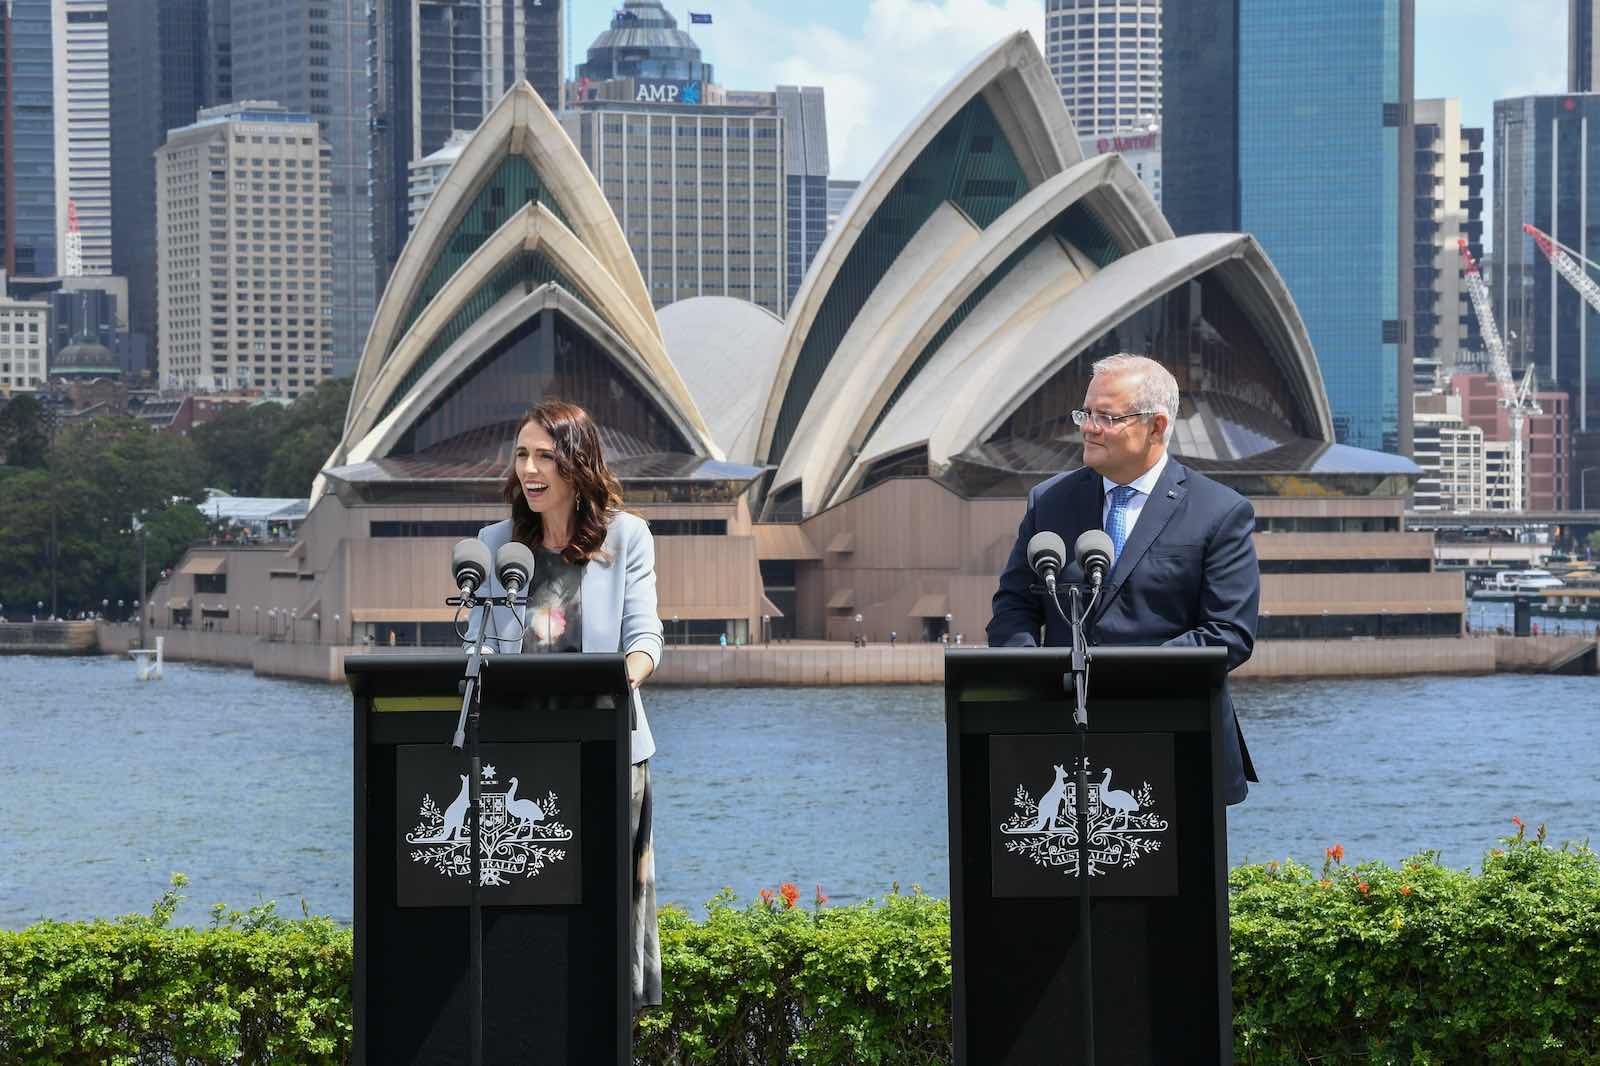 New Zealand Prime Minister Jacinda Ardern (left) and Australian Prime Minster Scott Morrison at a joint press conference in Sydney, 28 February 2020 (James D. Morgan/Getty Images)